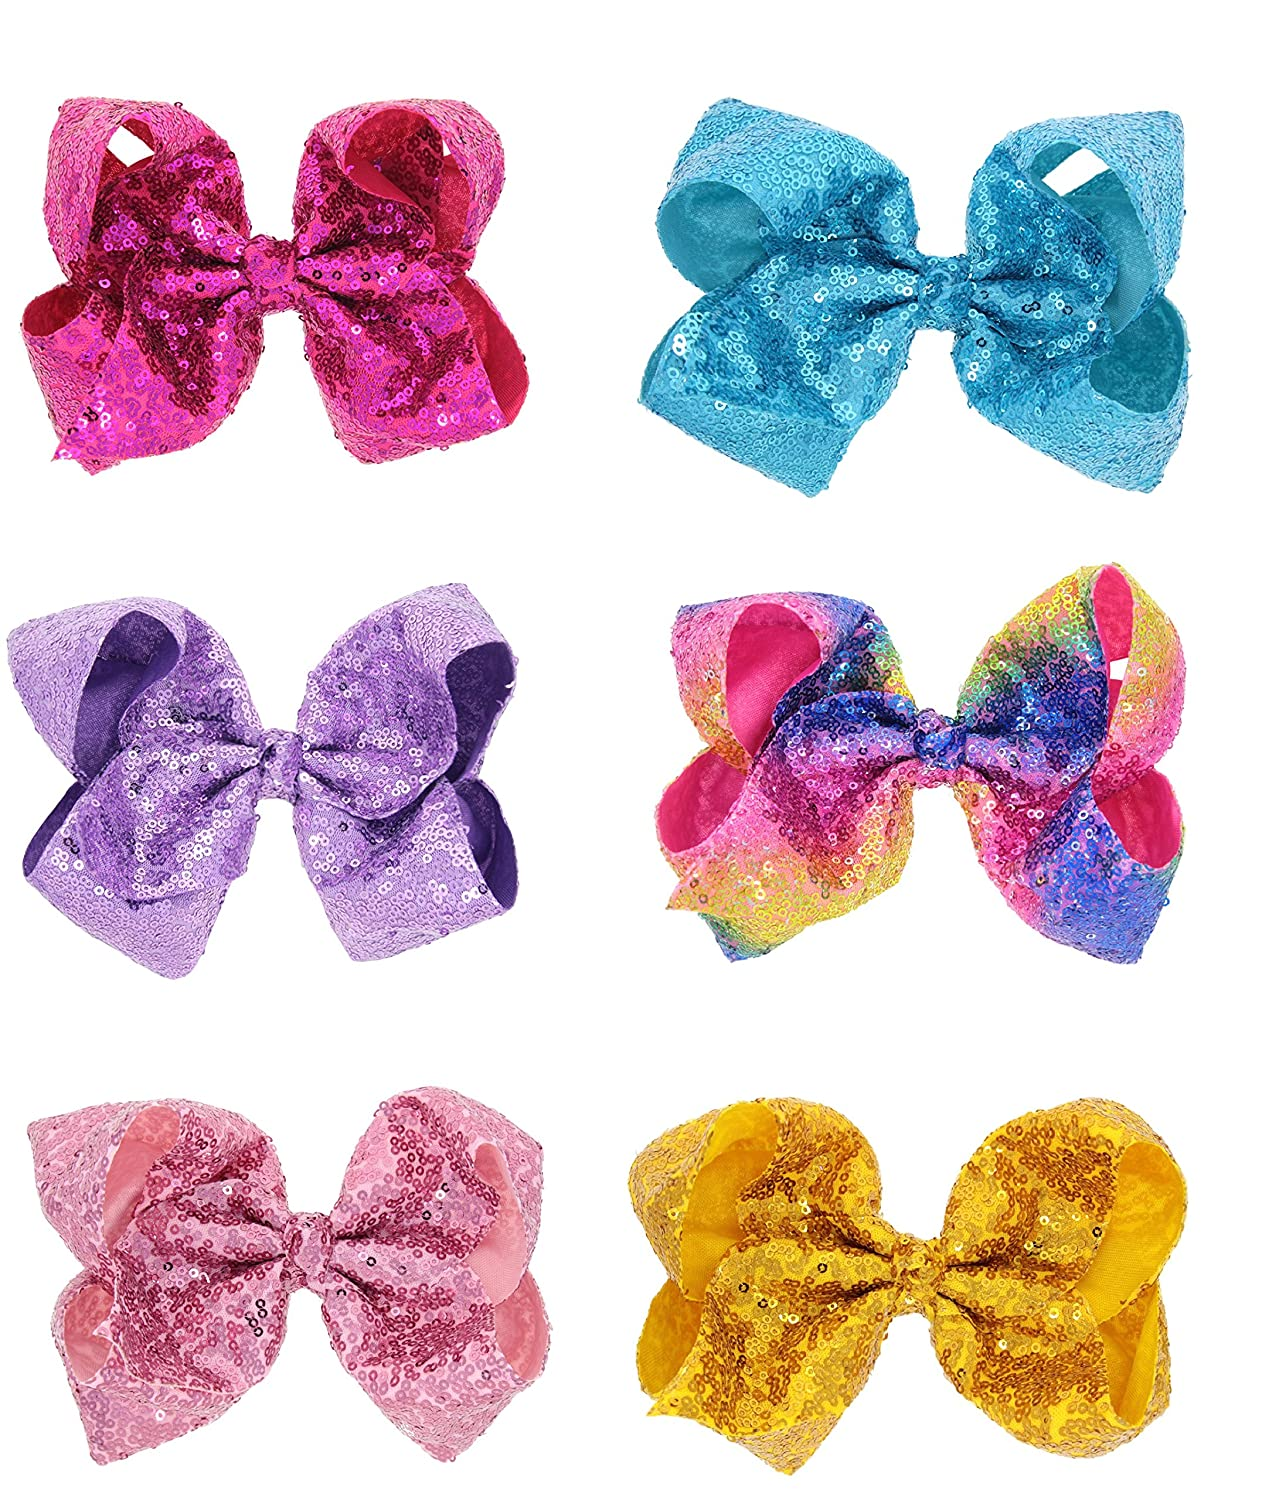 8Inch Large Colorful Bow Hair Clips Barrettes for Baby Girl Toddlers Kids Women